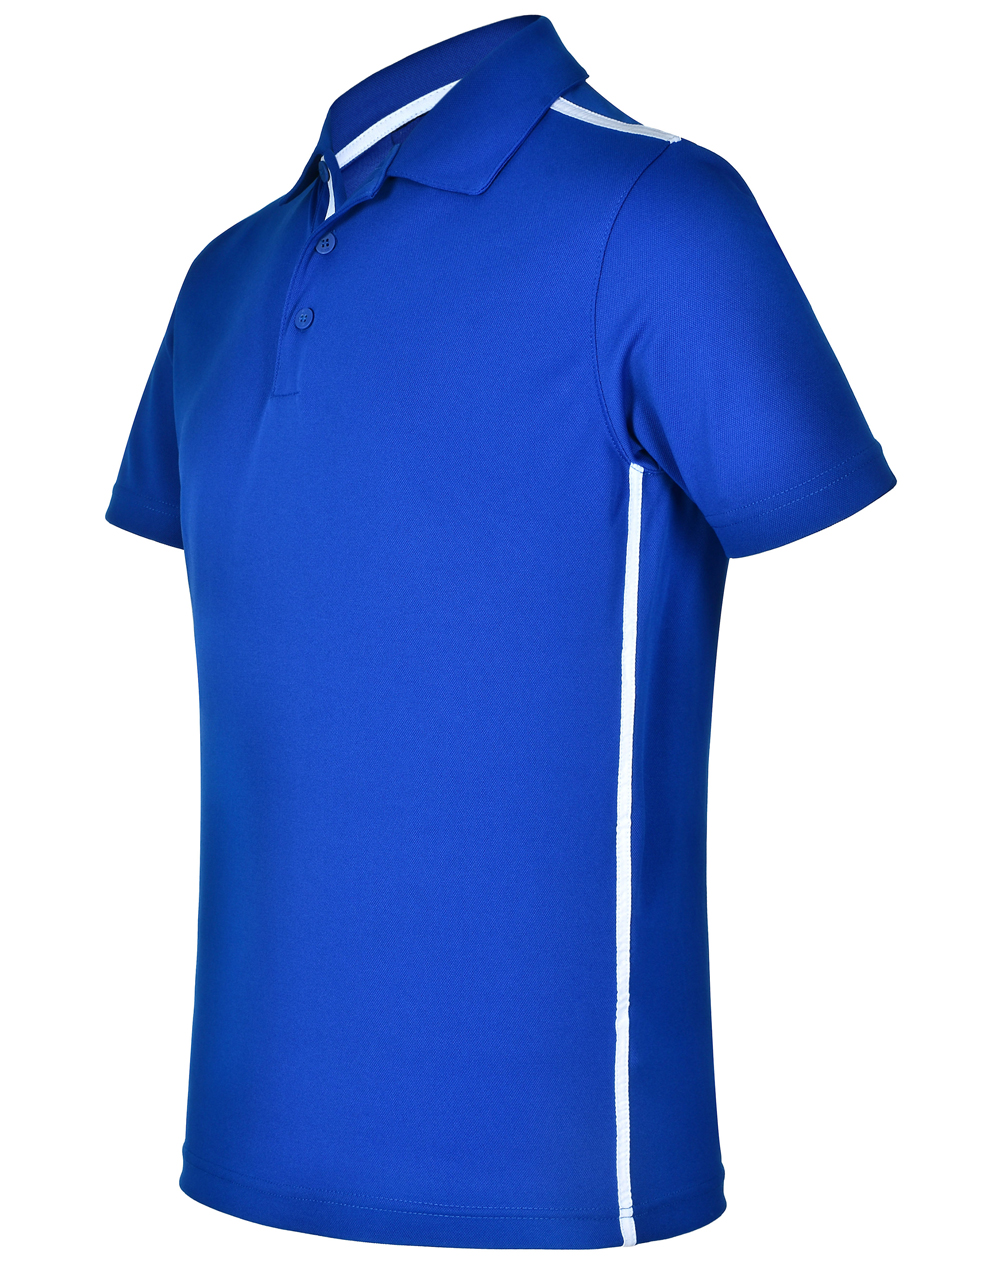 https://s3-ap-southeast-1.amazonaws.com/ws-imgs/POLOSHIRTS/PS83_RoyalWhite_Side.jpg